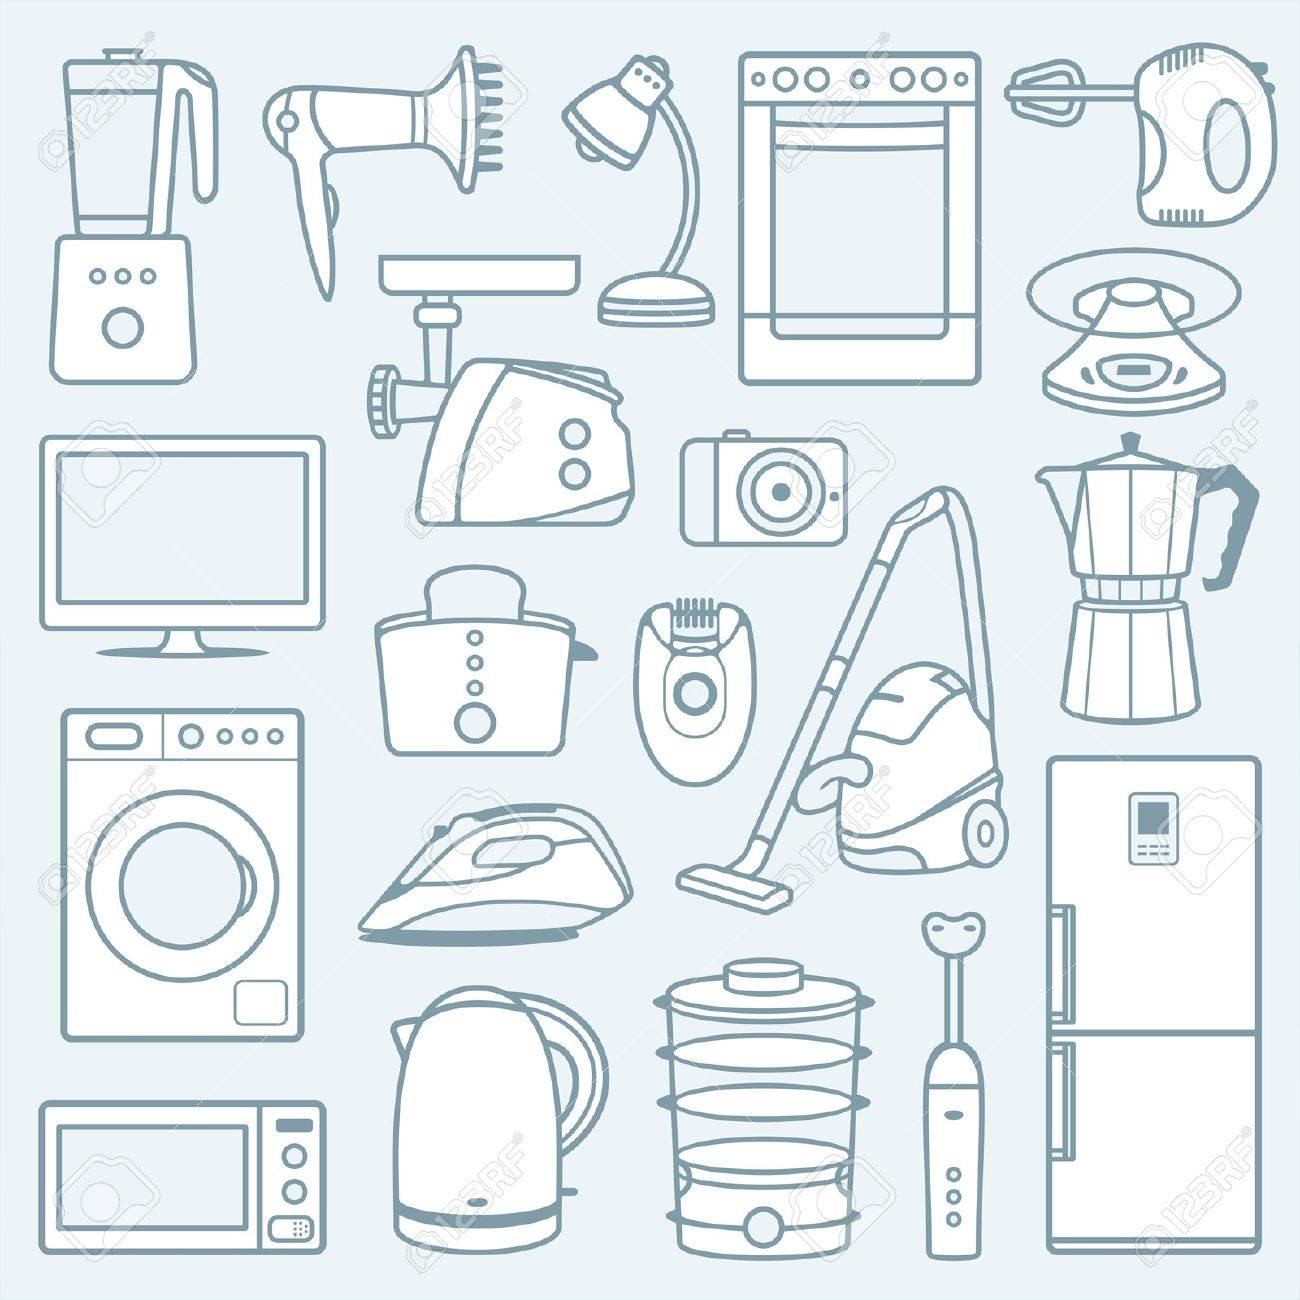 Home appliances a background Stock Vector - 19829497